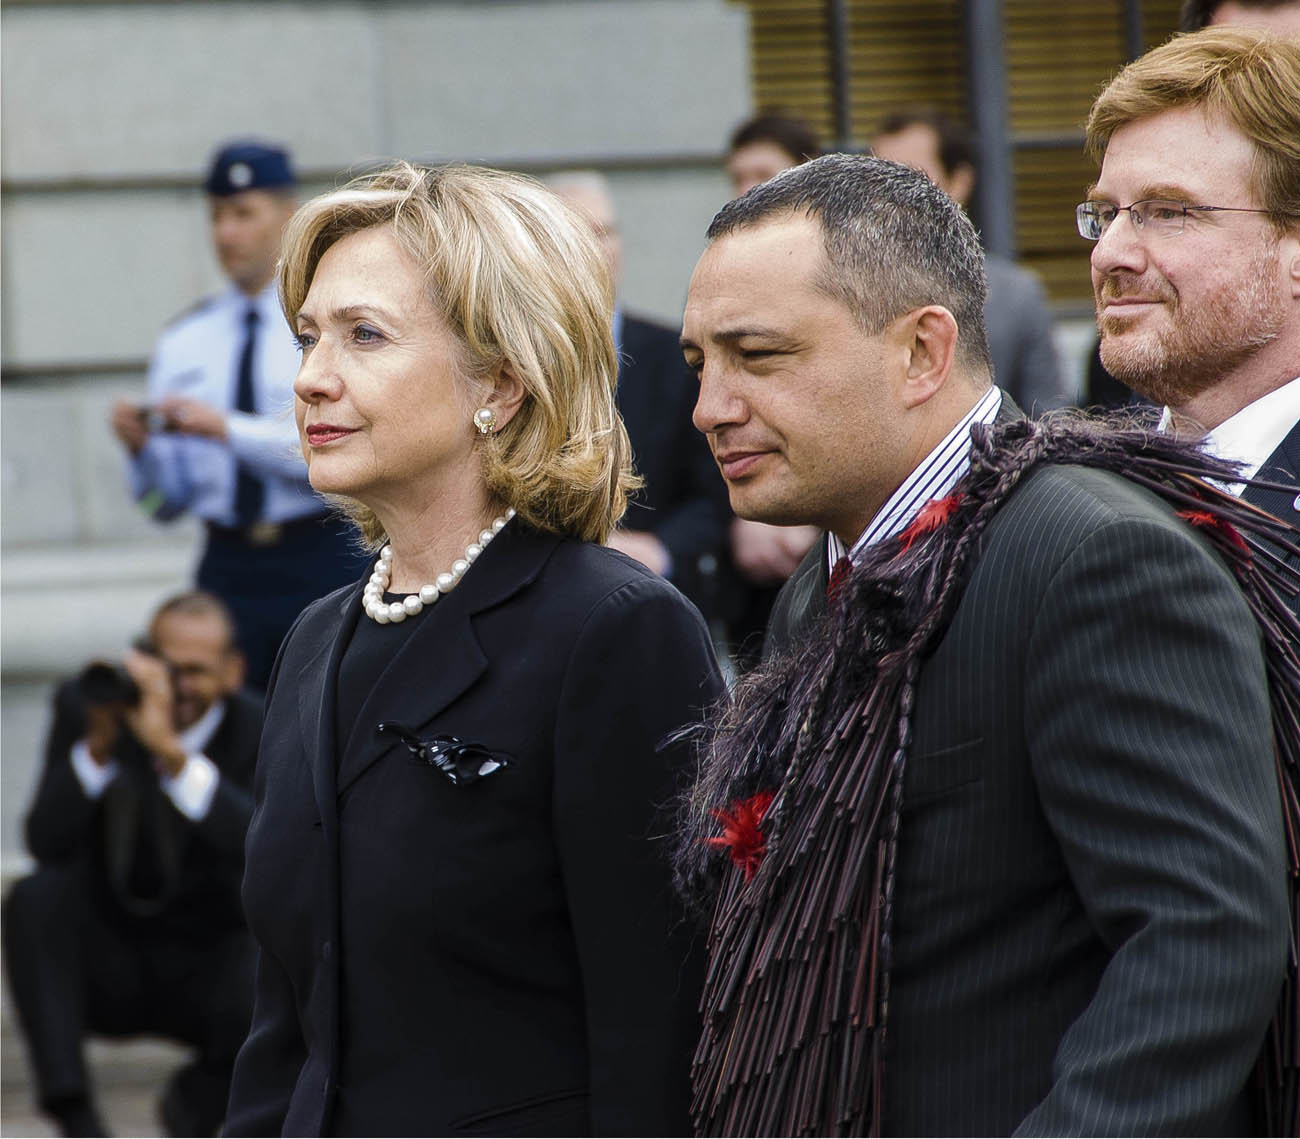 Hillary-Clinton-Event-Photo-Wellington-NZ-Photographer-Kevin-Hawkins-